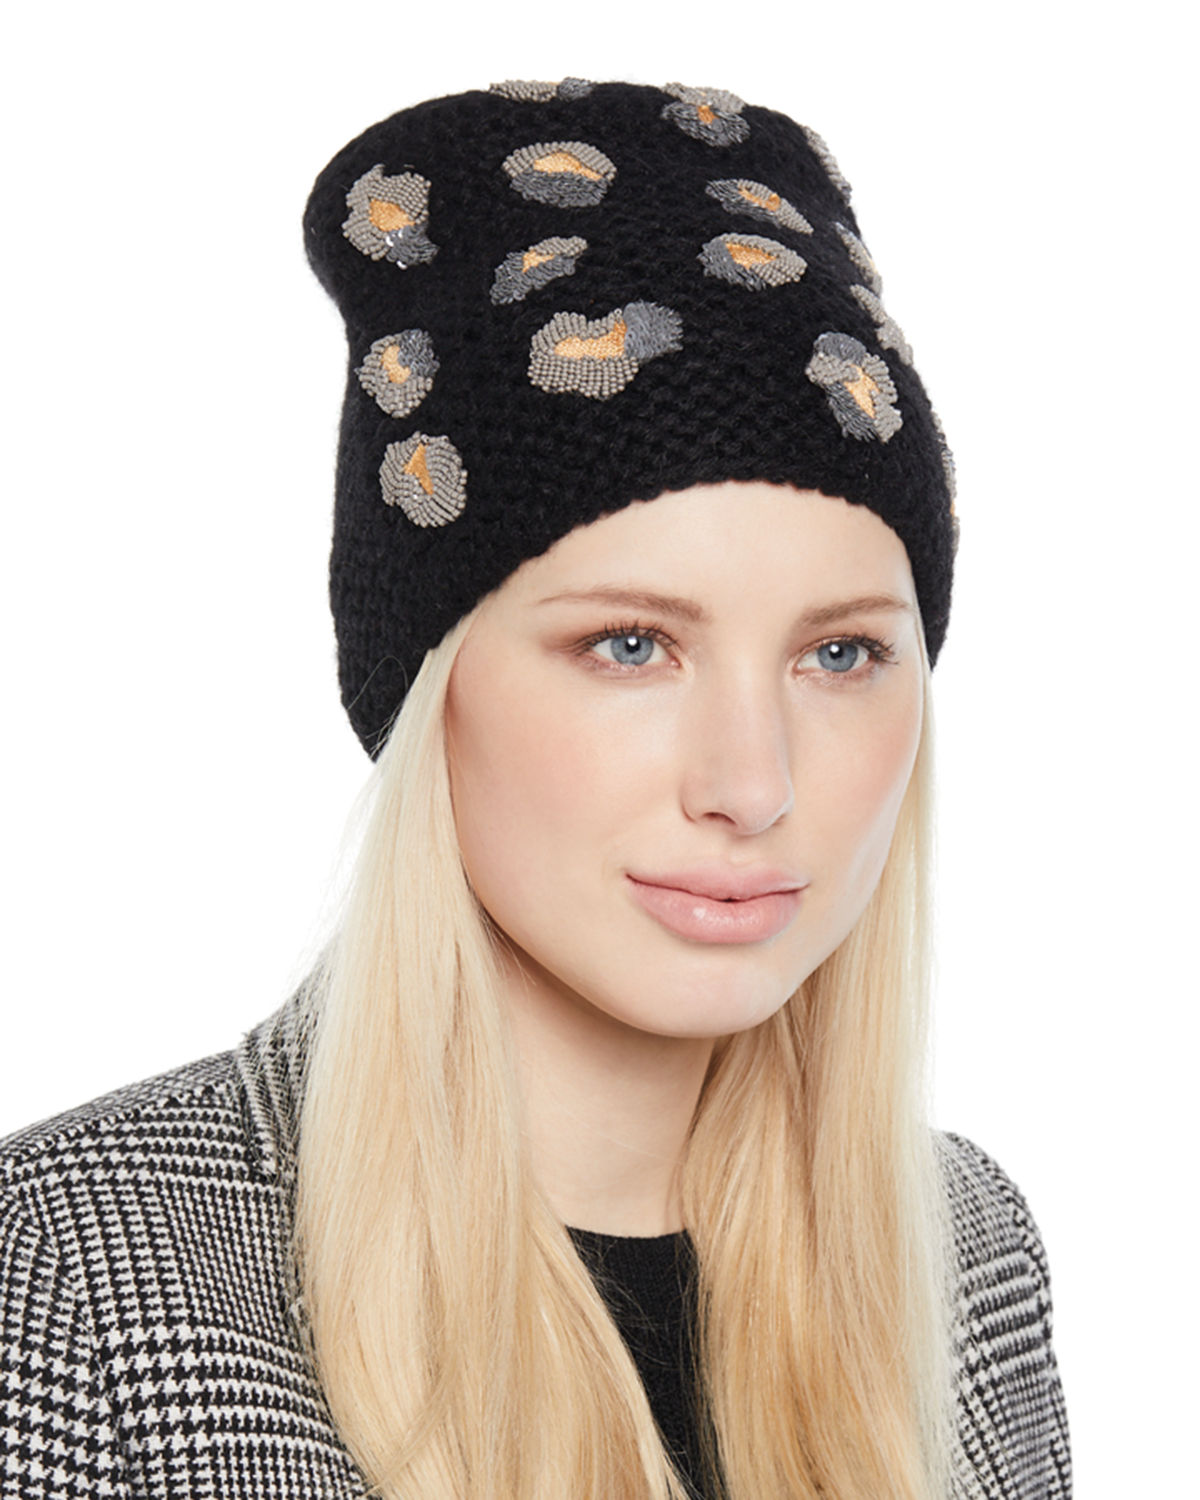 e165b0619d0 Jennifer Behr Bengal Knit Embellished Beanie Hat In Black